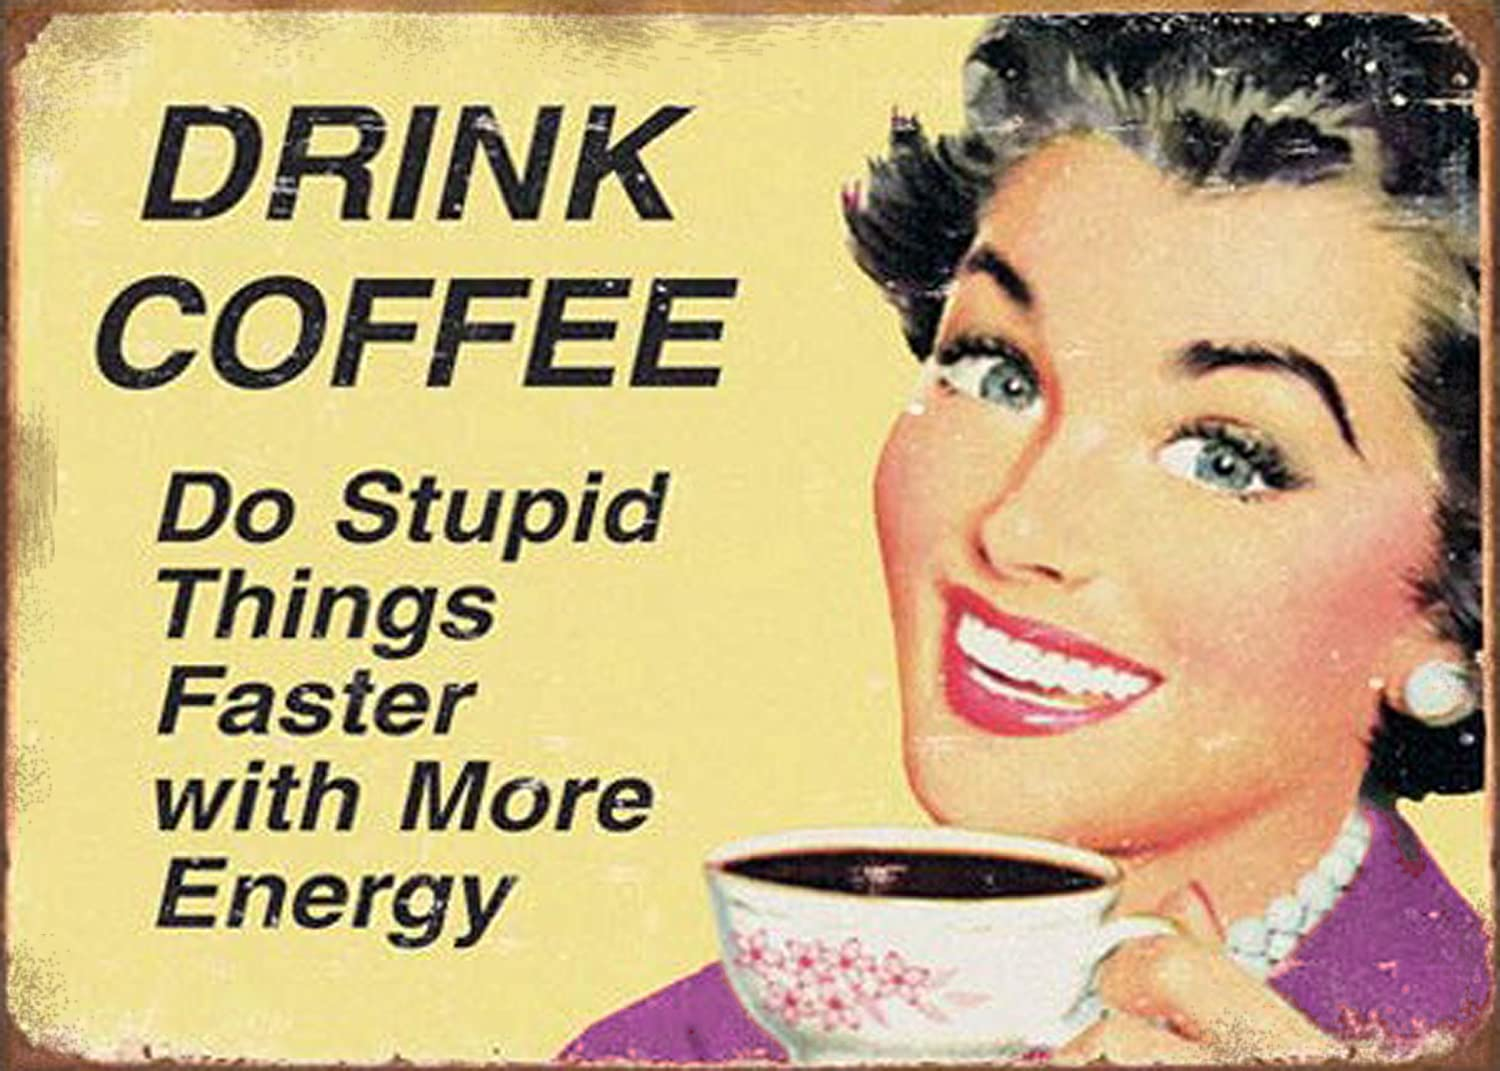 Drink Coffee Stupid Faster Metal Tin Sign Decor Funny Office Work